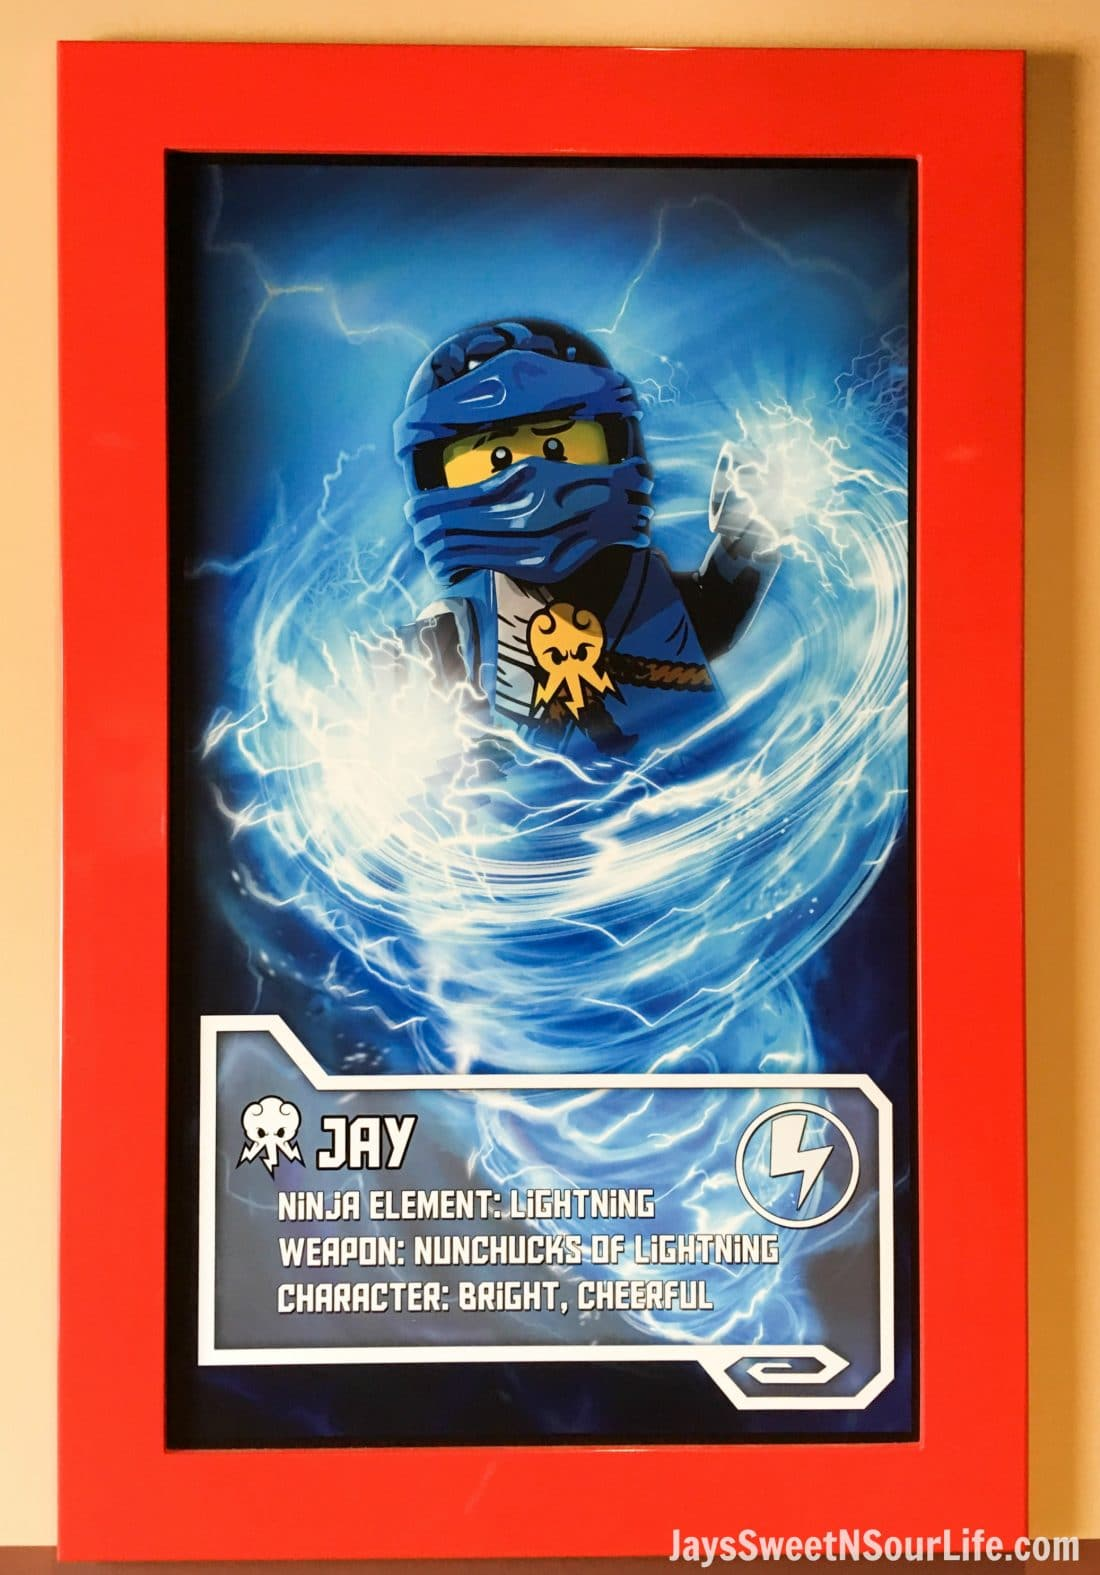 Legoland Florida Poster of Jay in the Ninjago World Ride. Spend your summer building memories at Legoland in Florida. There is something for the whole family to enjoy at this wonderful Theme Park.